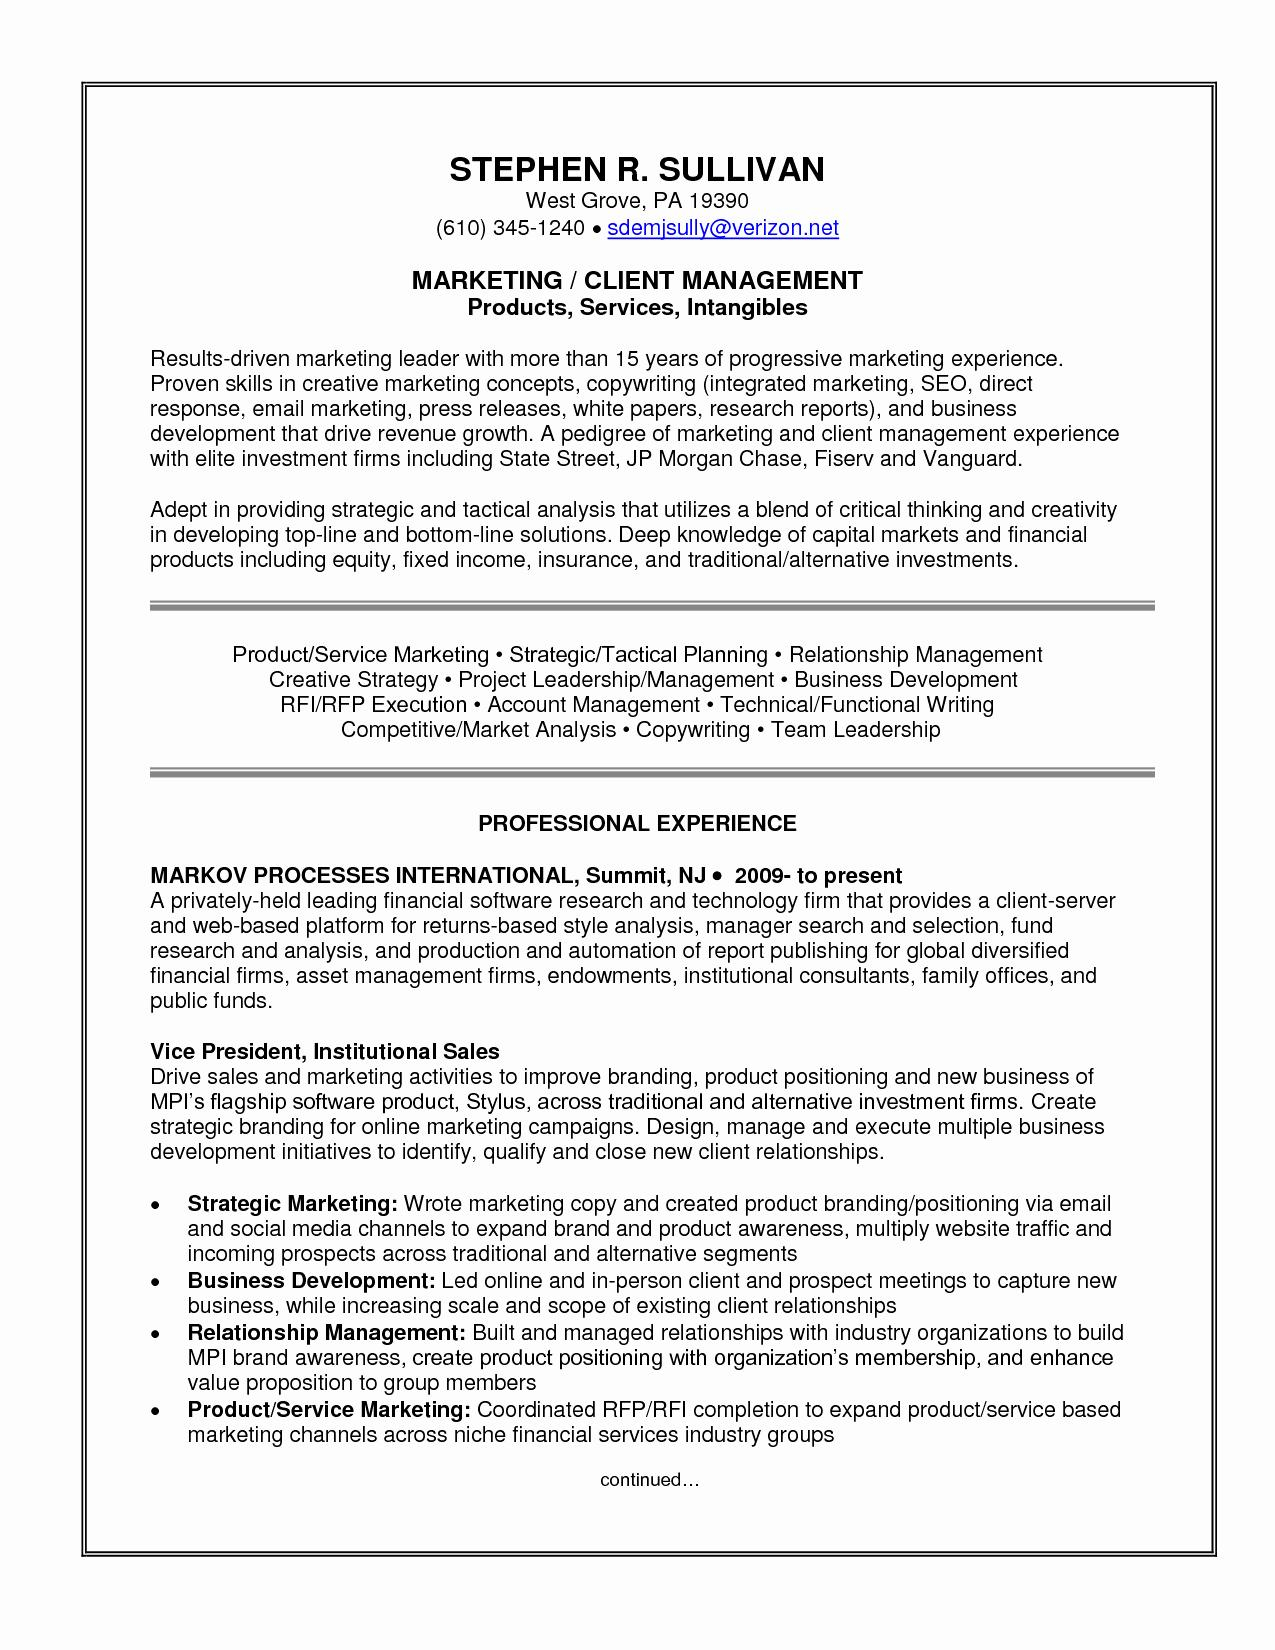 Information Security Analyst Resume - Brand Manager Sample Resume Lovely It Security Analyst Resume Sample